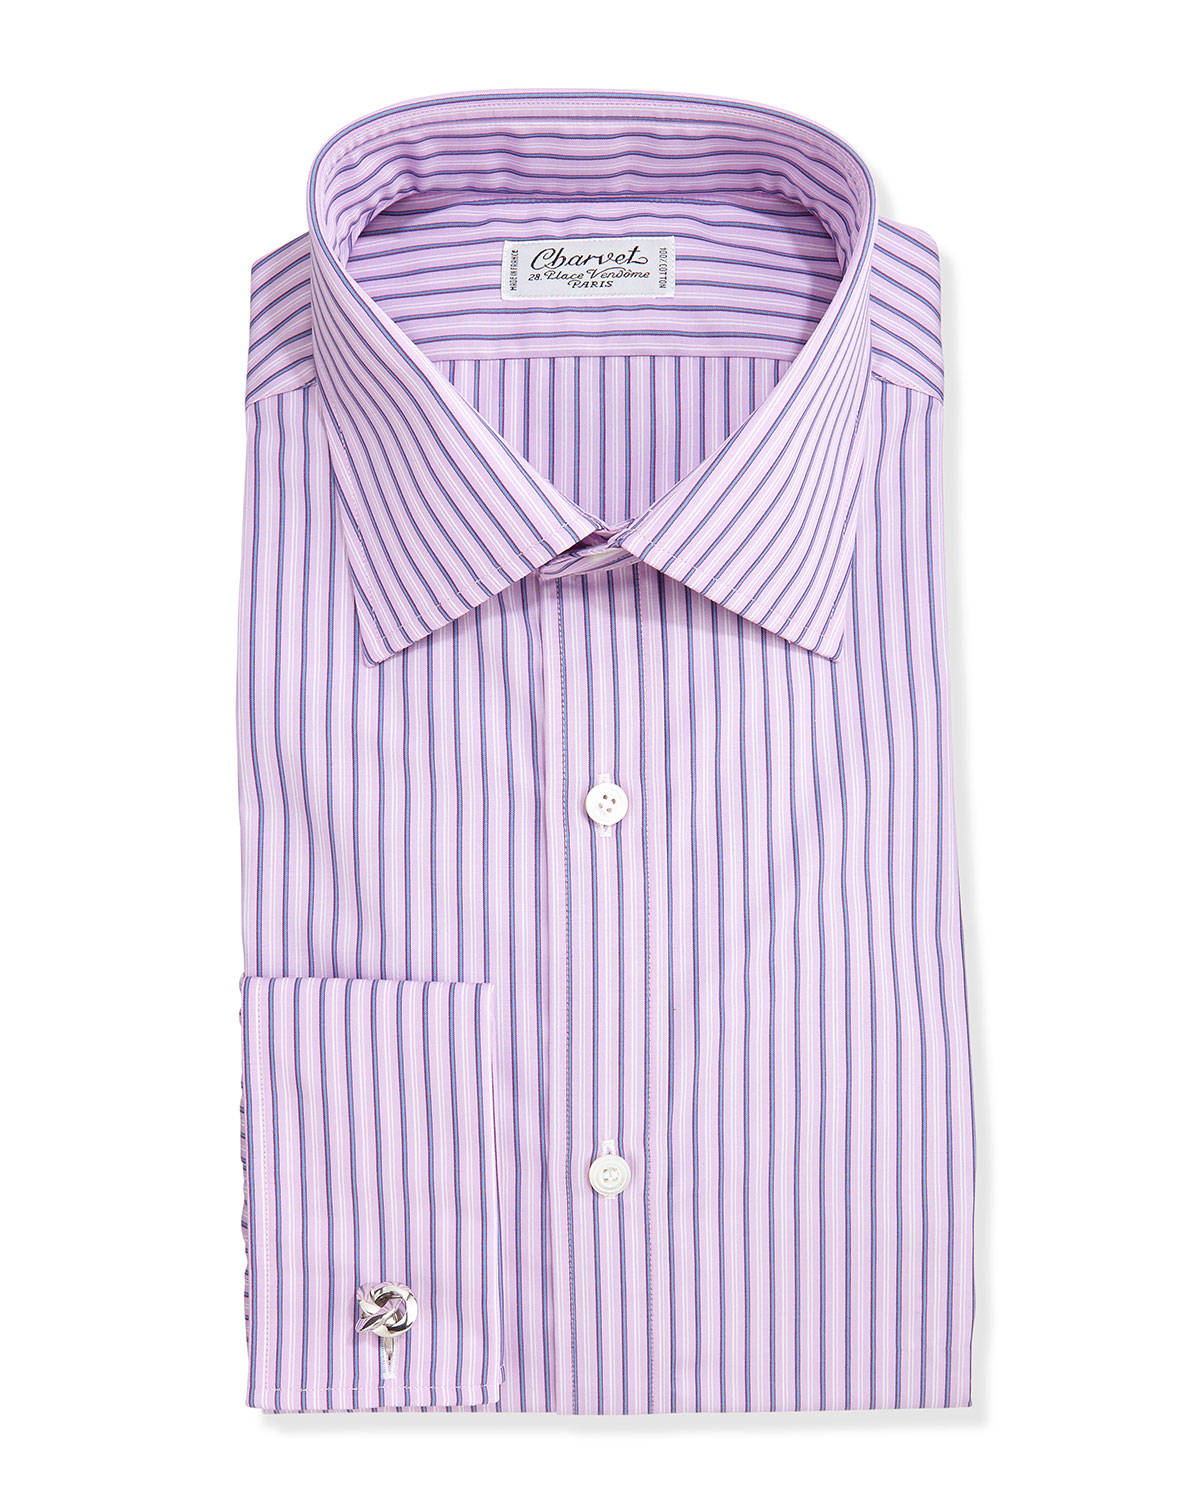 Charvet Purple Striped French Cuff Dress Shirt For Men